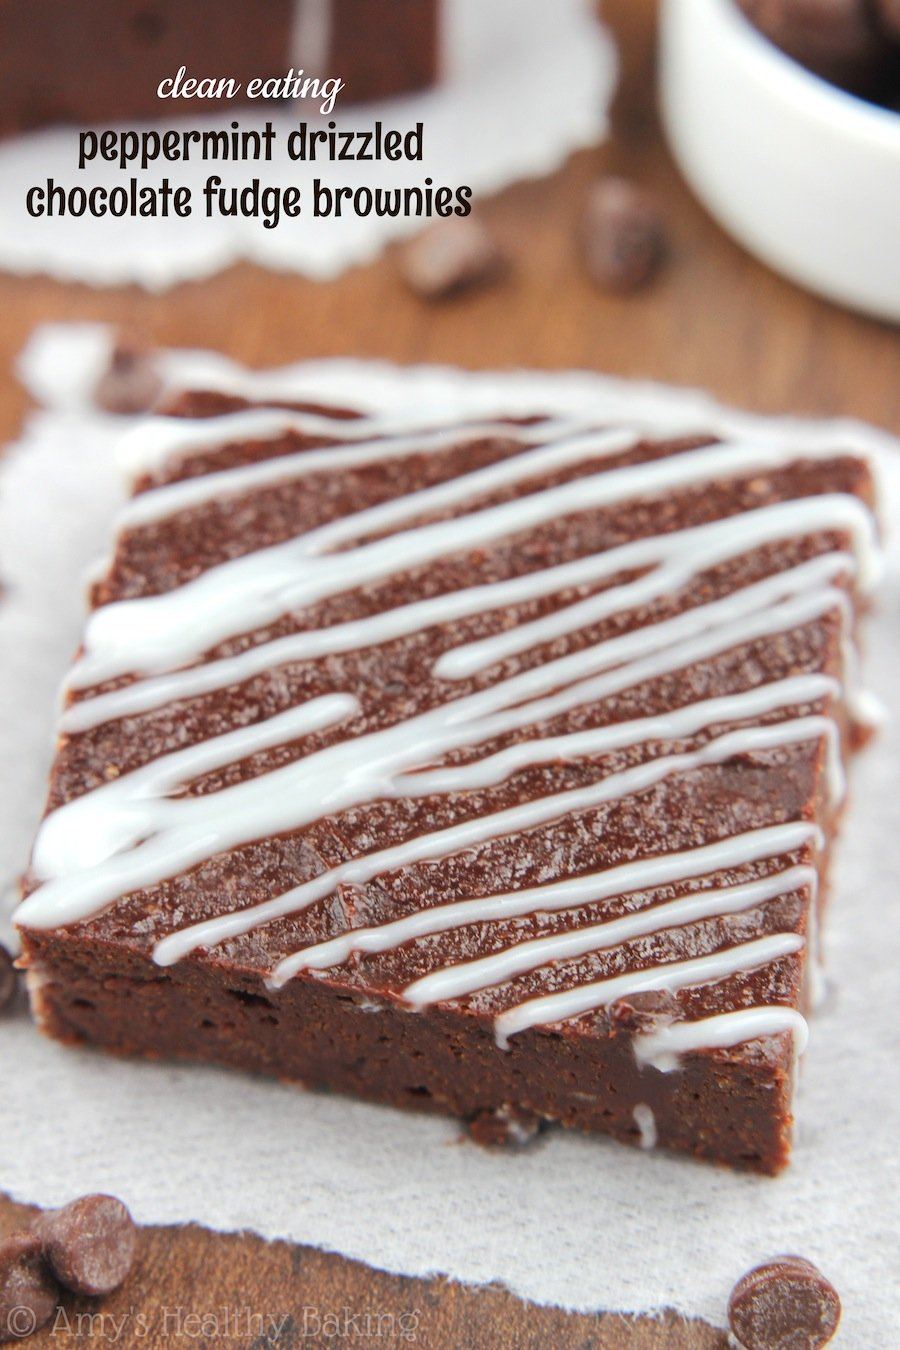 Peppermint Drizzled Chocolate Fudge Brownies